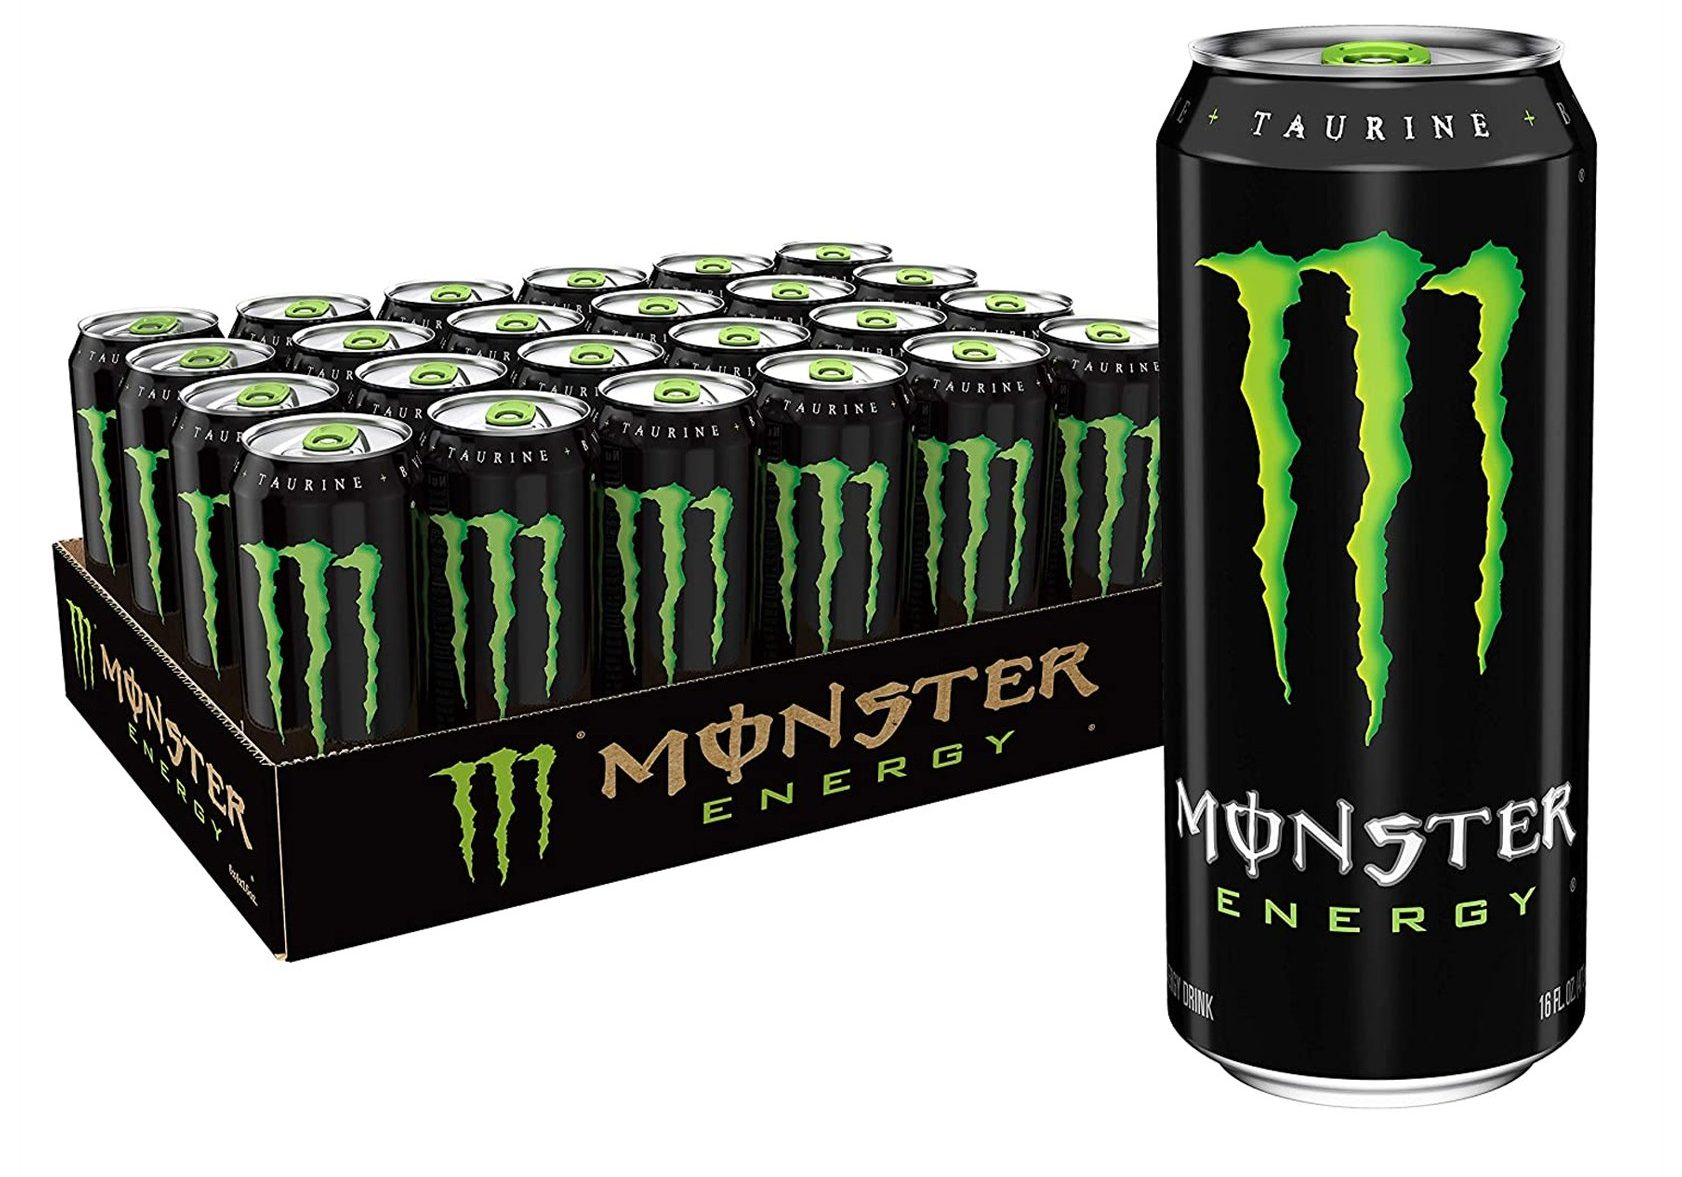 morongo travel center deals - monster energy drink 16oz